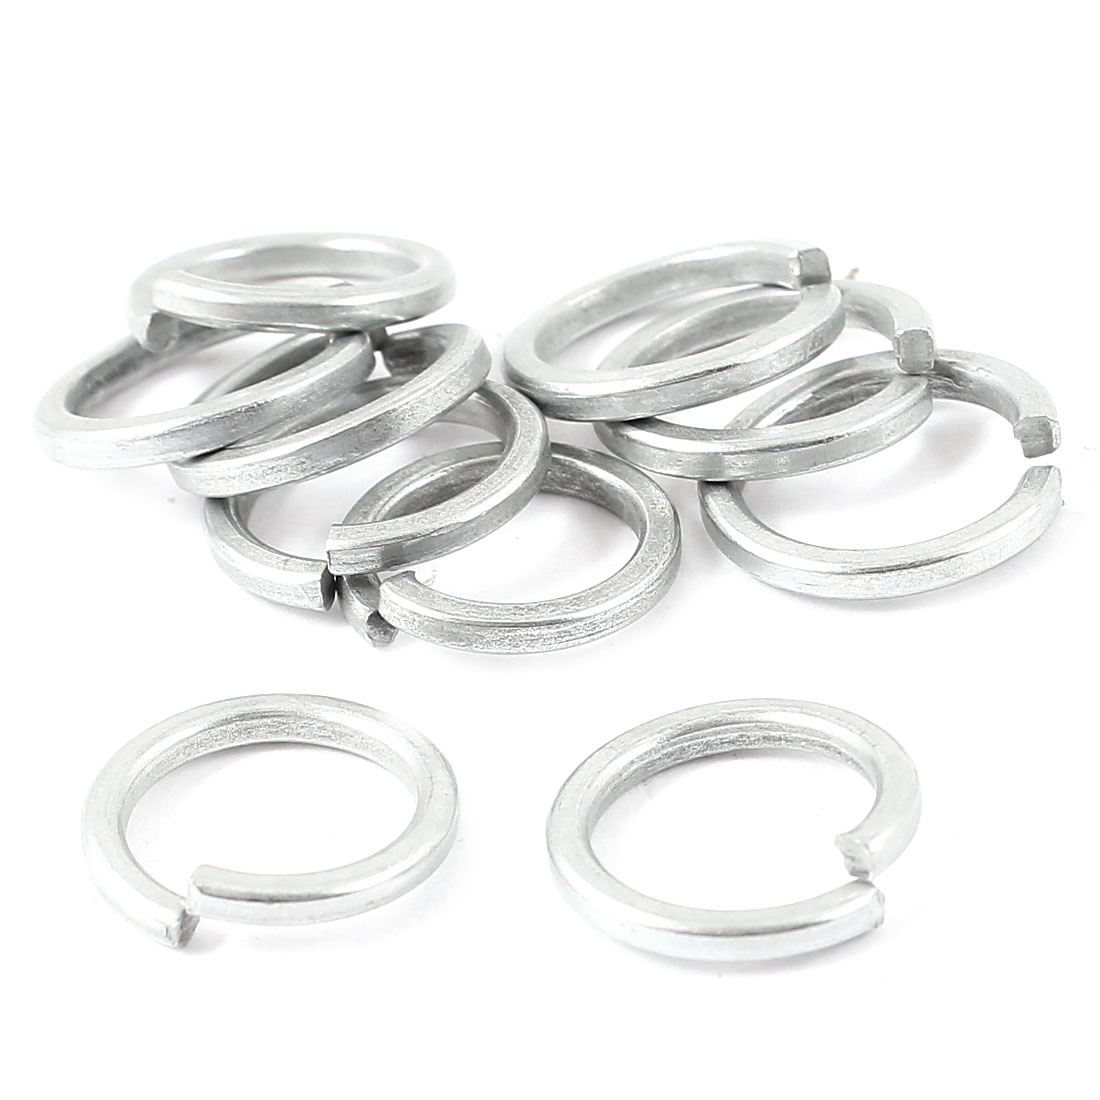 10 Pcs 10mm x 14mm x 2mm Metal Split Lock Sealing Ring Spring Washer Fastener